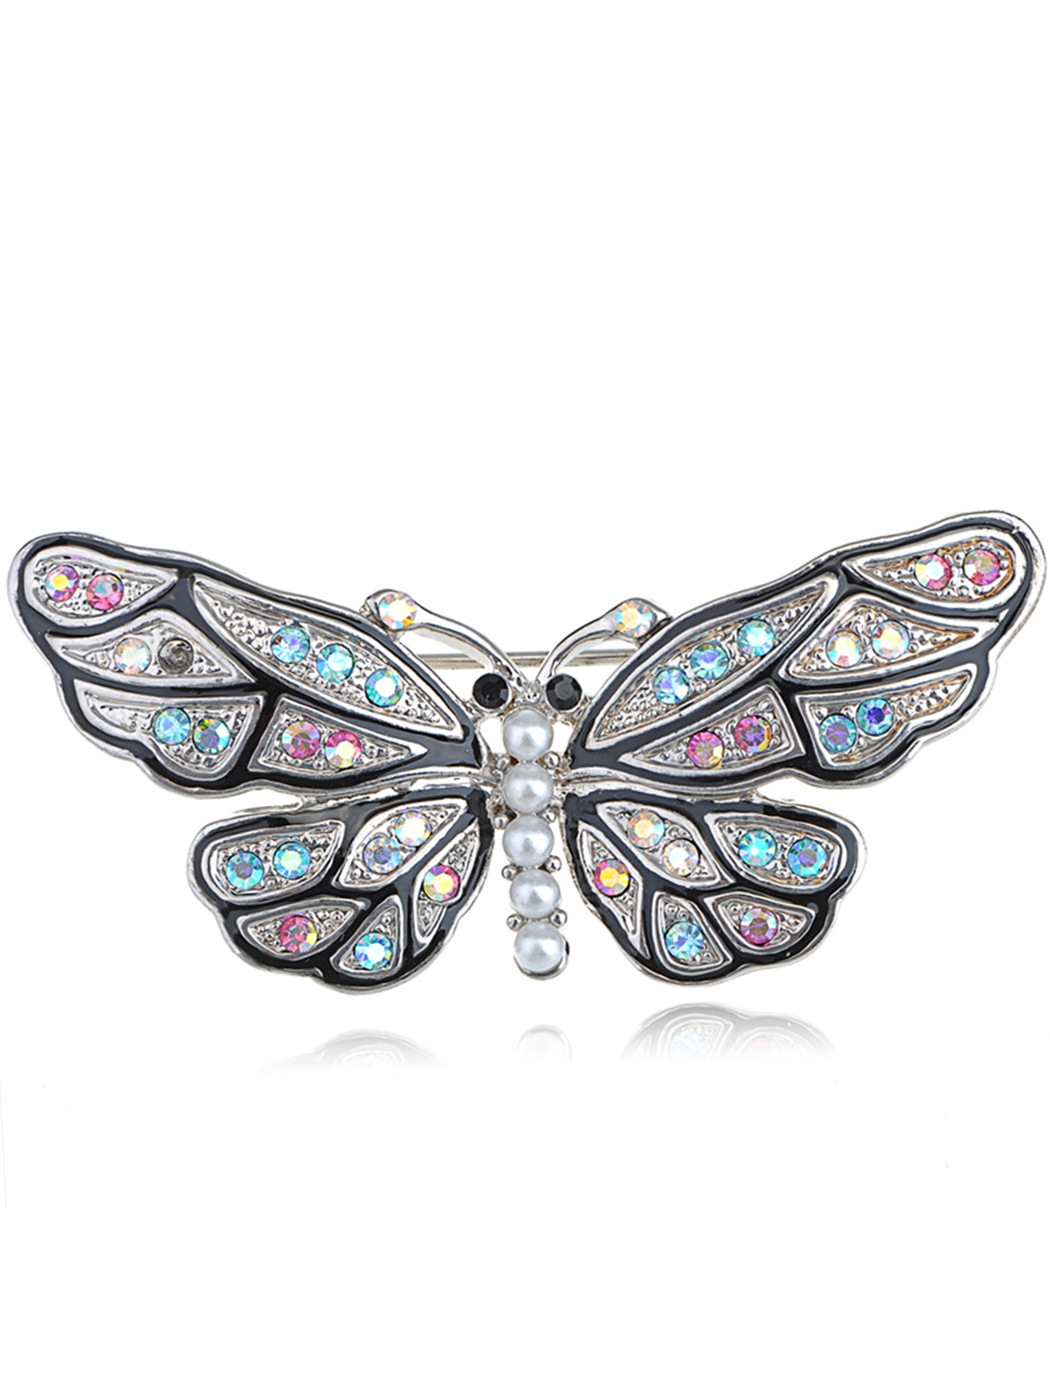 Mosaic Multicolor Crystal Rhinestone Faux Pearl Body Butterfly Moth Pin Brooch